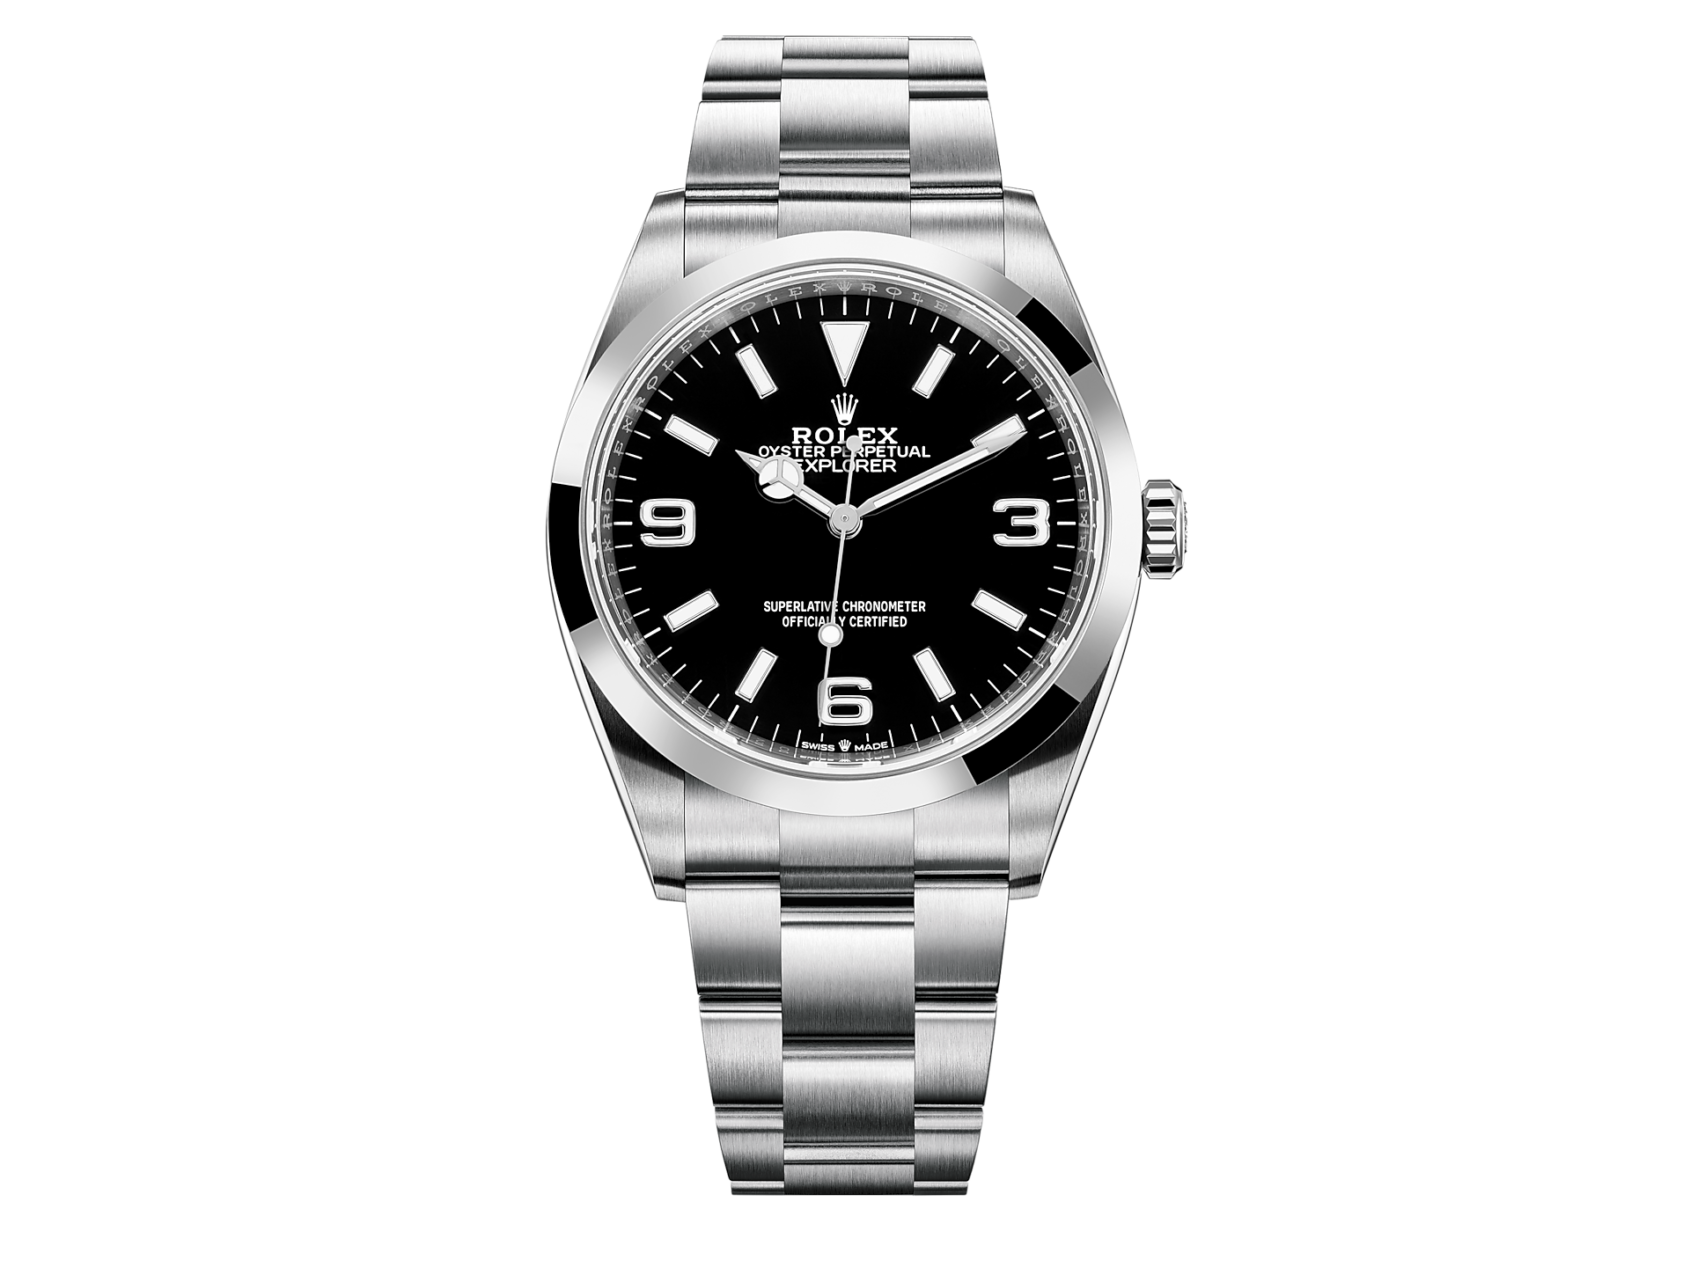 bargains left in the Rolex catalogue